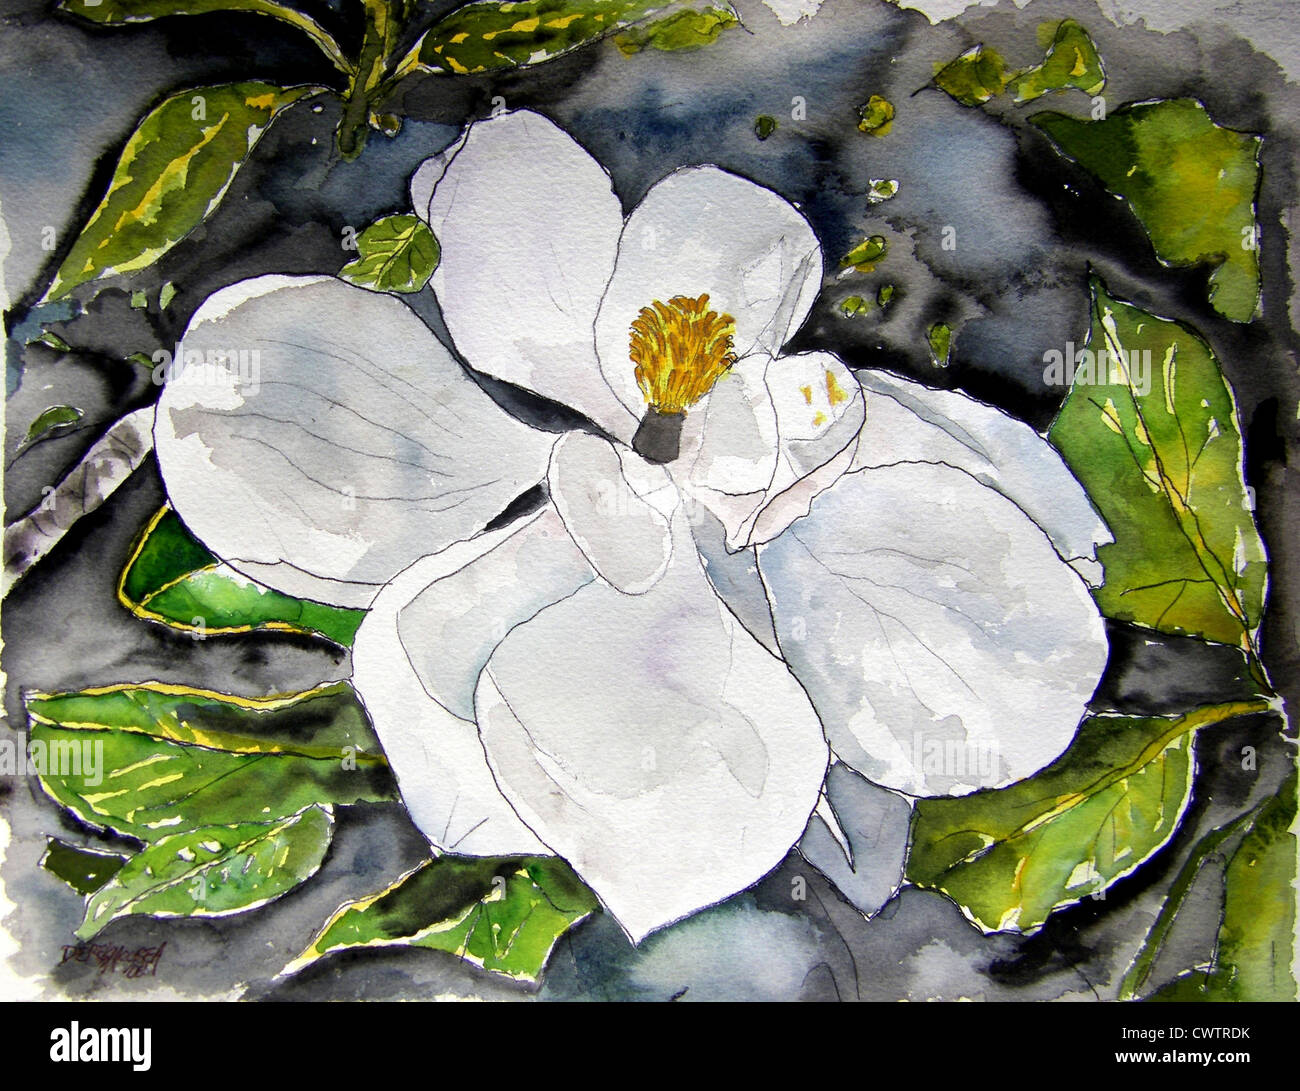 Magnolia Flower Watercolor Painting Stock Photo 50332399 Alamy